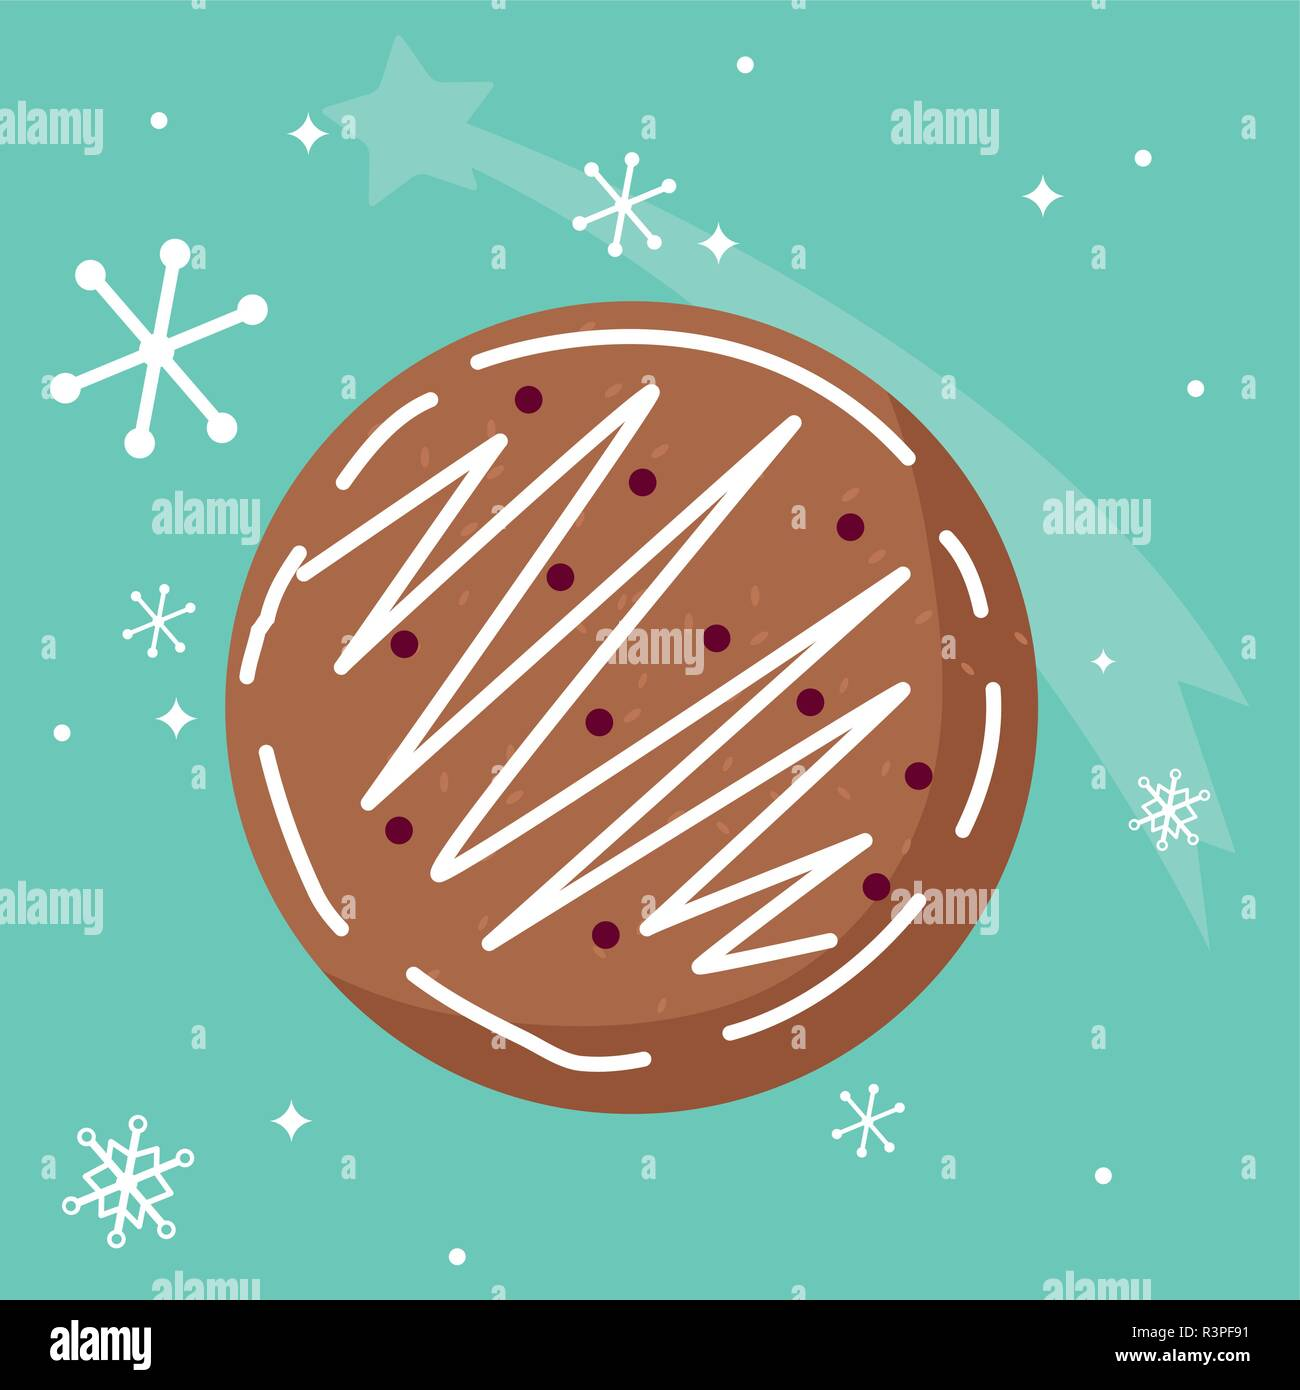 christmas cookie icon over blue background, vector illustration - Stock Vector